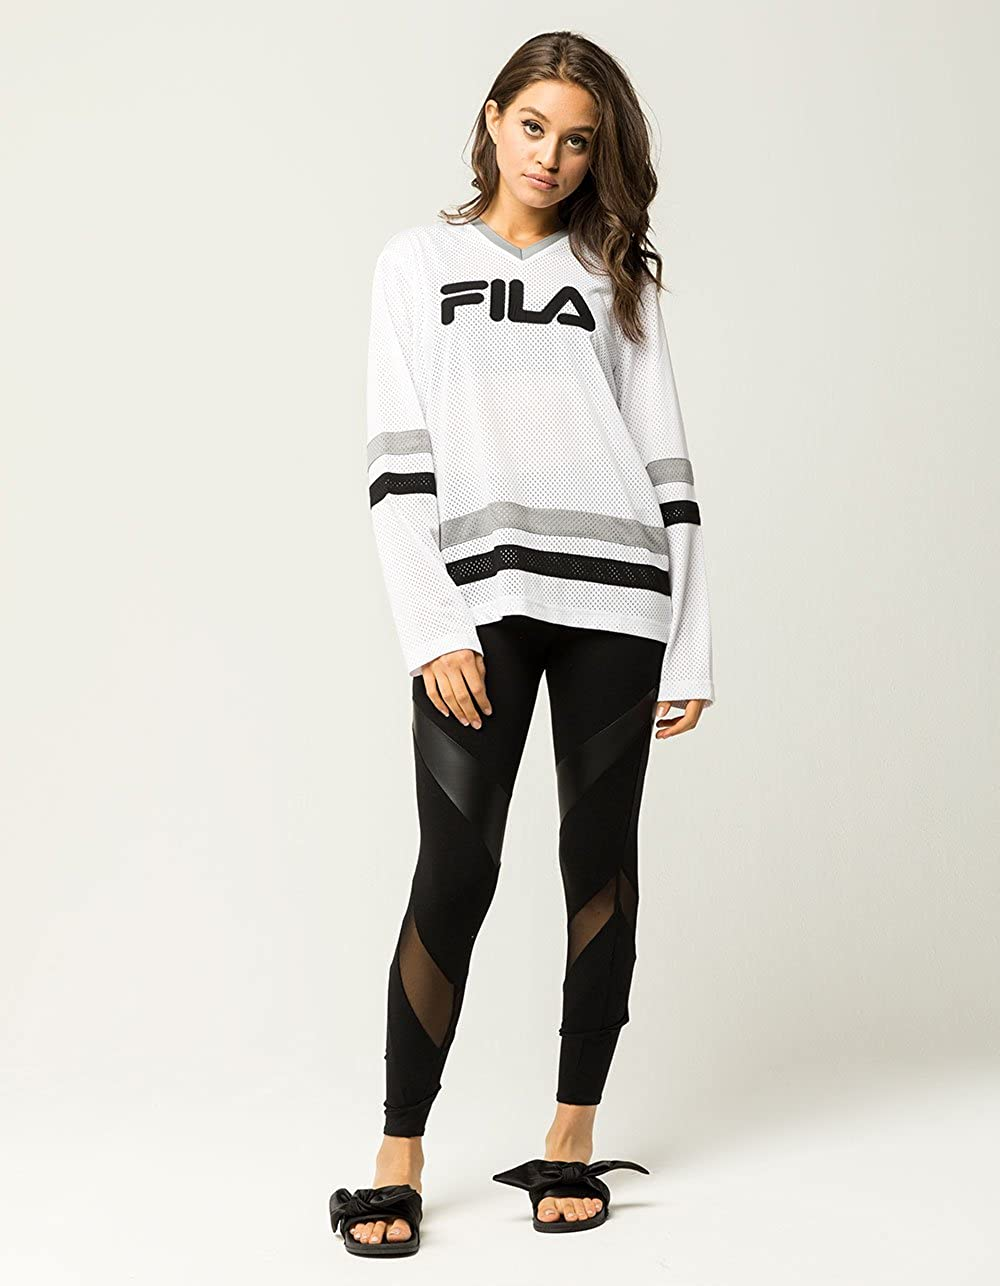 90ba4a7345c Fila Tanya Hockey Jersey: Amazon.co.uk: Clothing